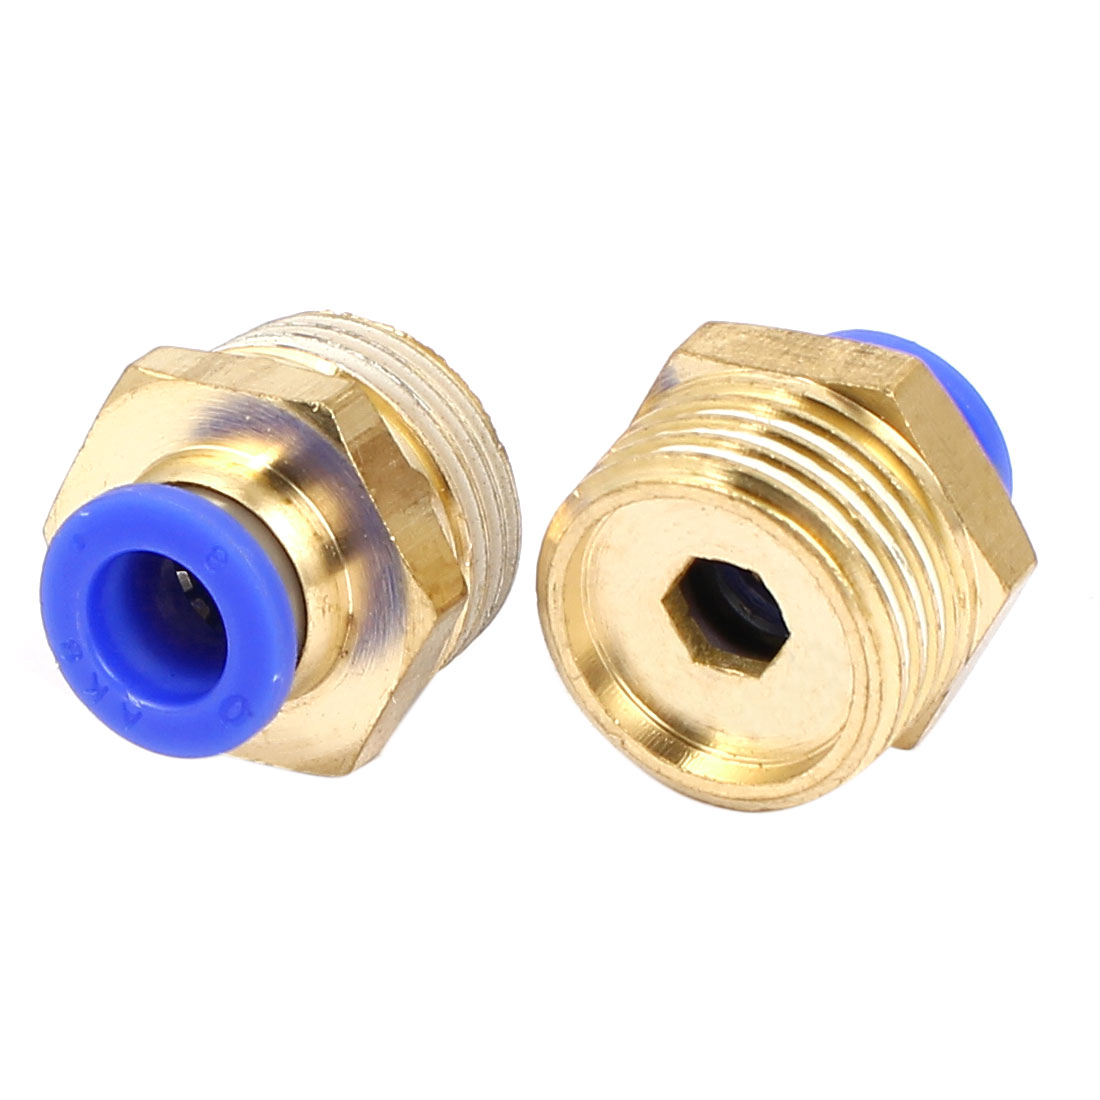 1/2BSP Male Thread 8mm Push In Joint Pneumatic Connector Quick Fittings 2pcs